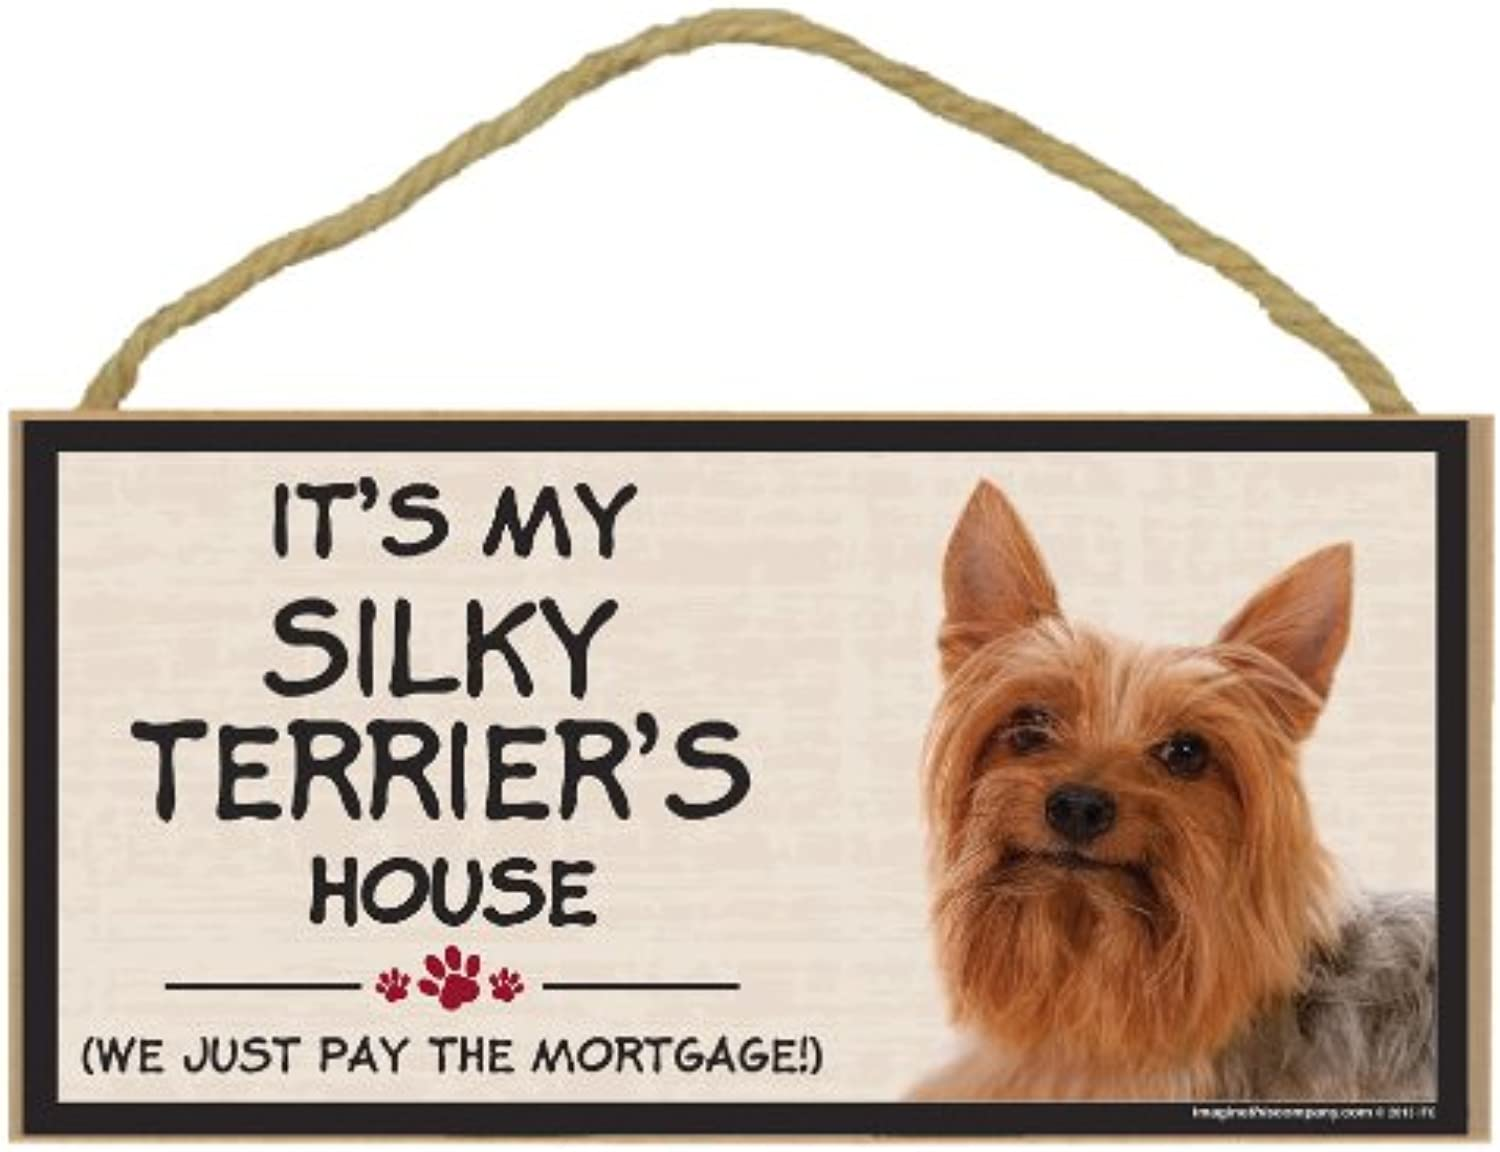 Imagine This Wood Breed Decorative Mortgage Sign, Silky Terrier